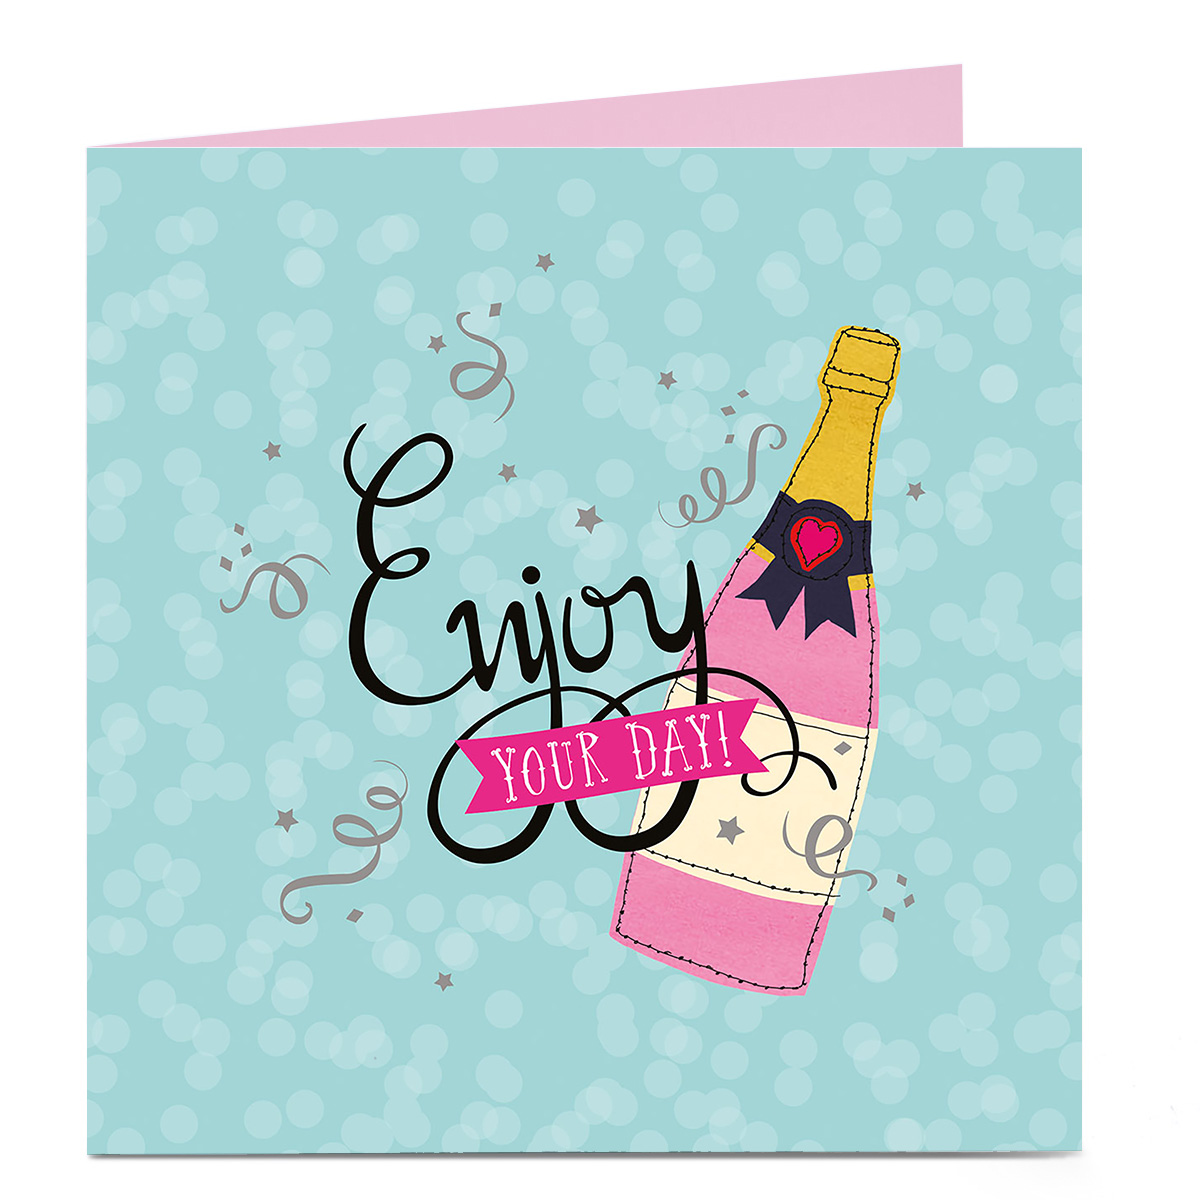 Personalised Bright Ideas Card - Enjoy Your Day